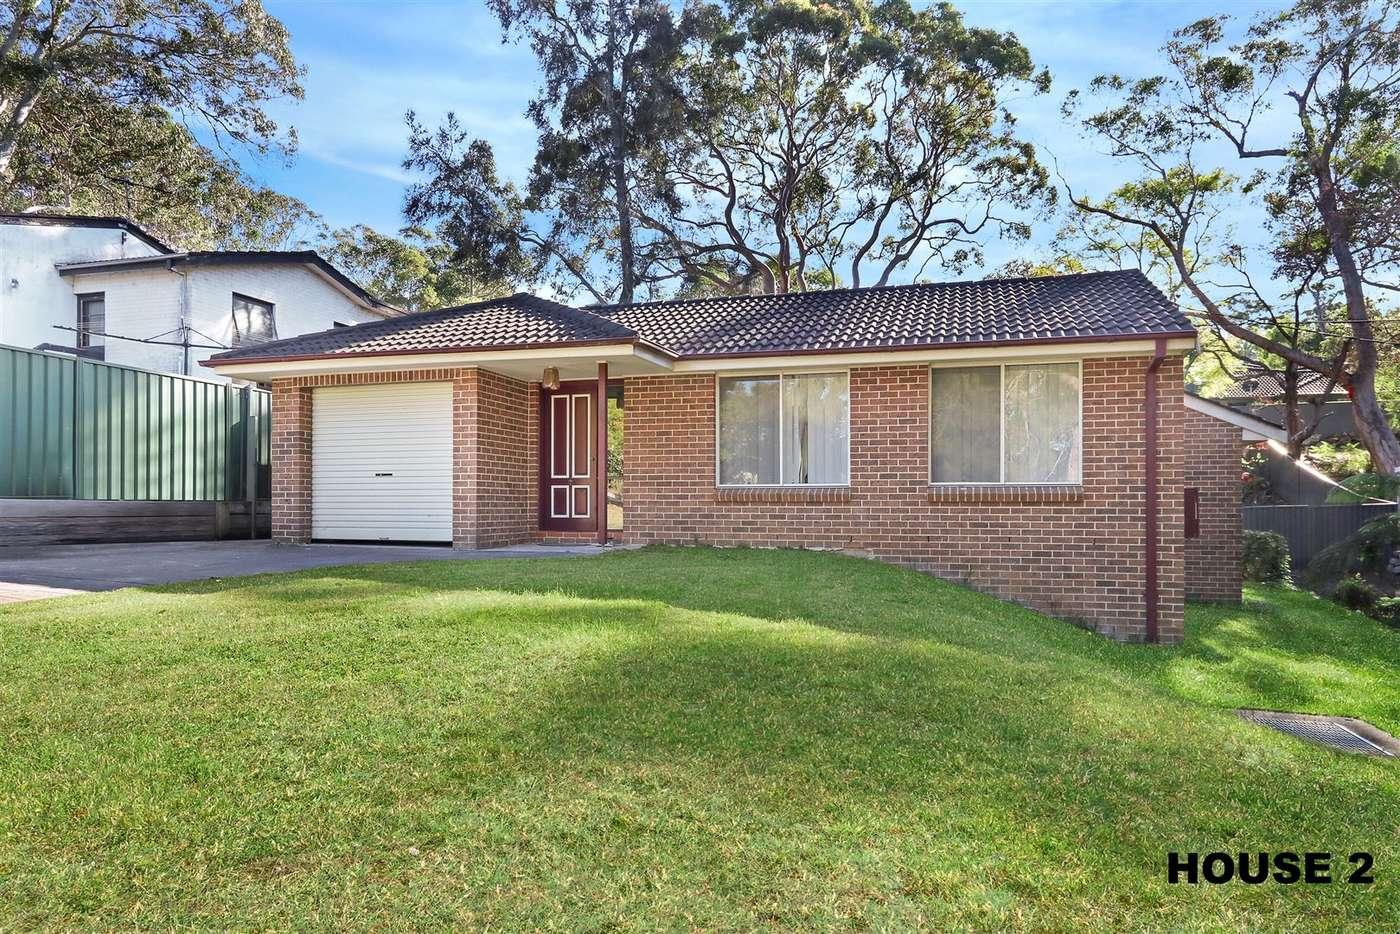 Main view of Homely house listing, 132 Glencoe Street, Sutherland NSW 2232